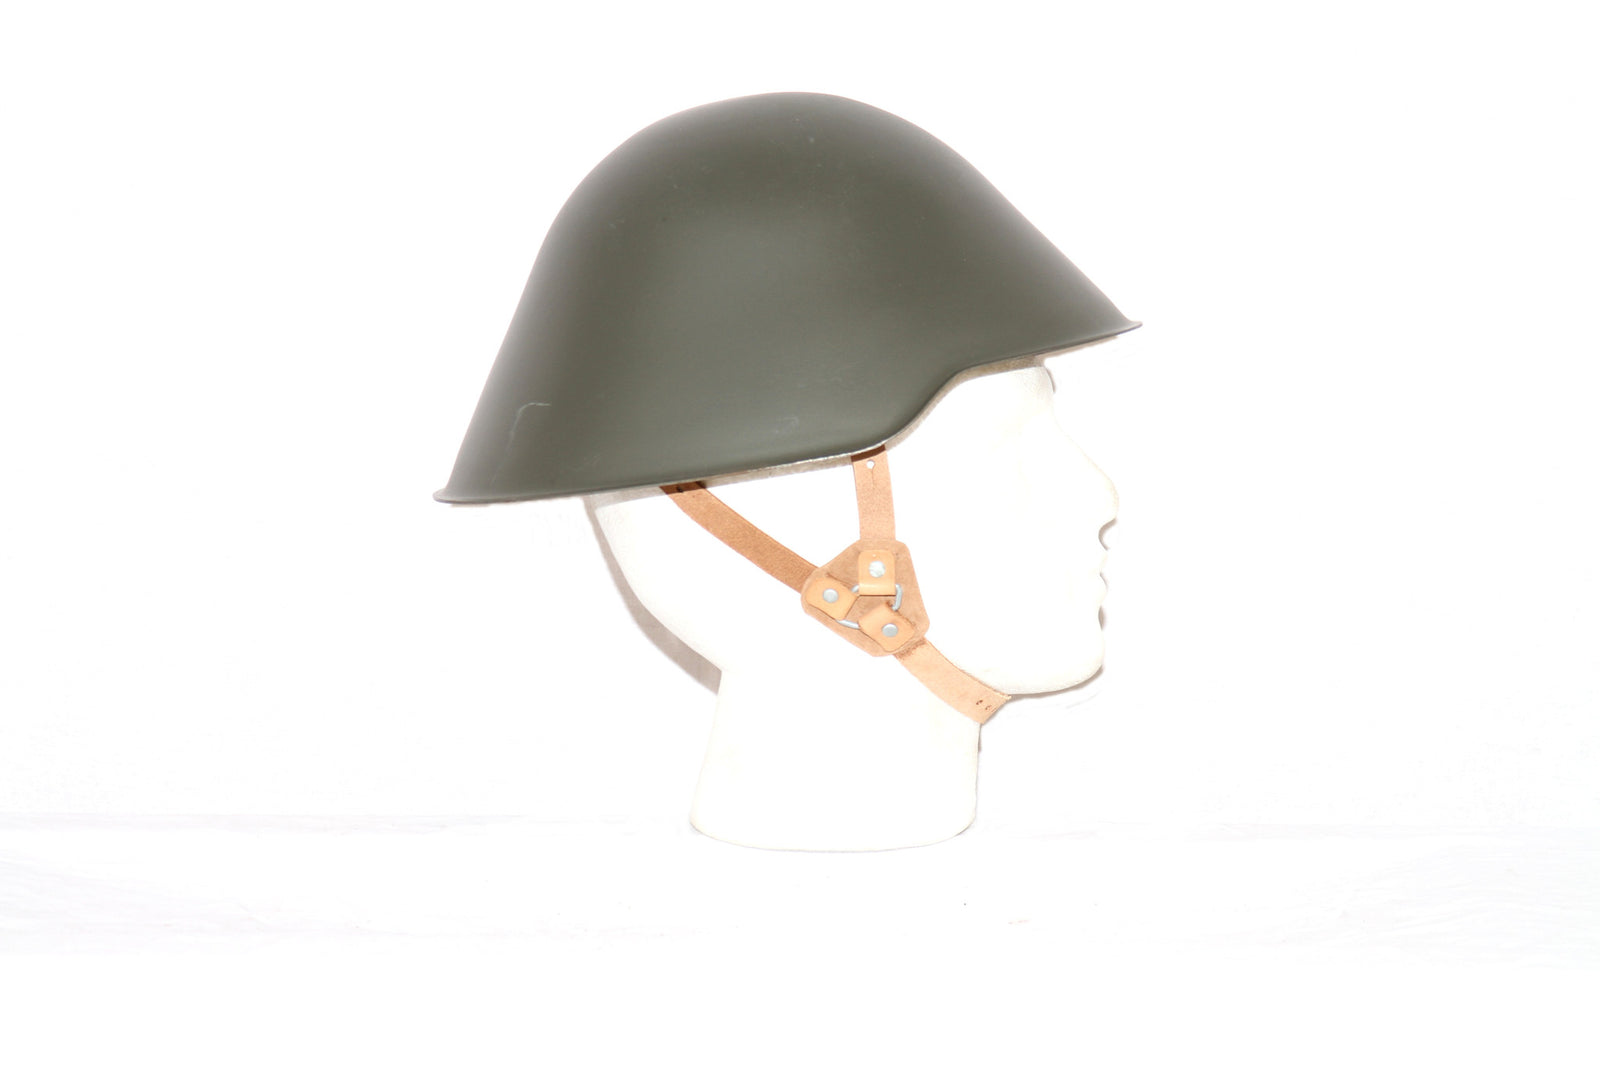 East German Military Helmet and Net cover *NEW*